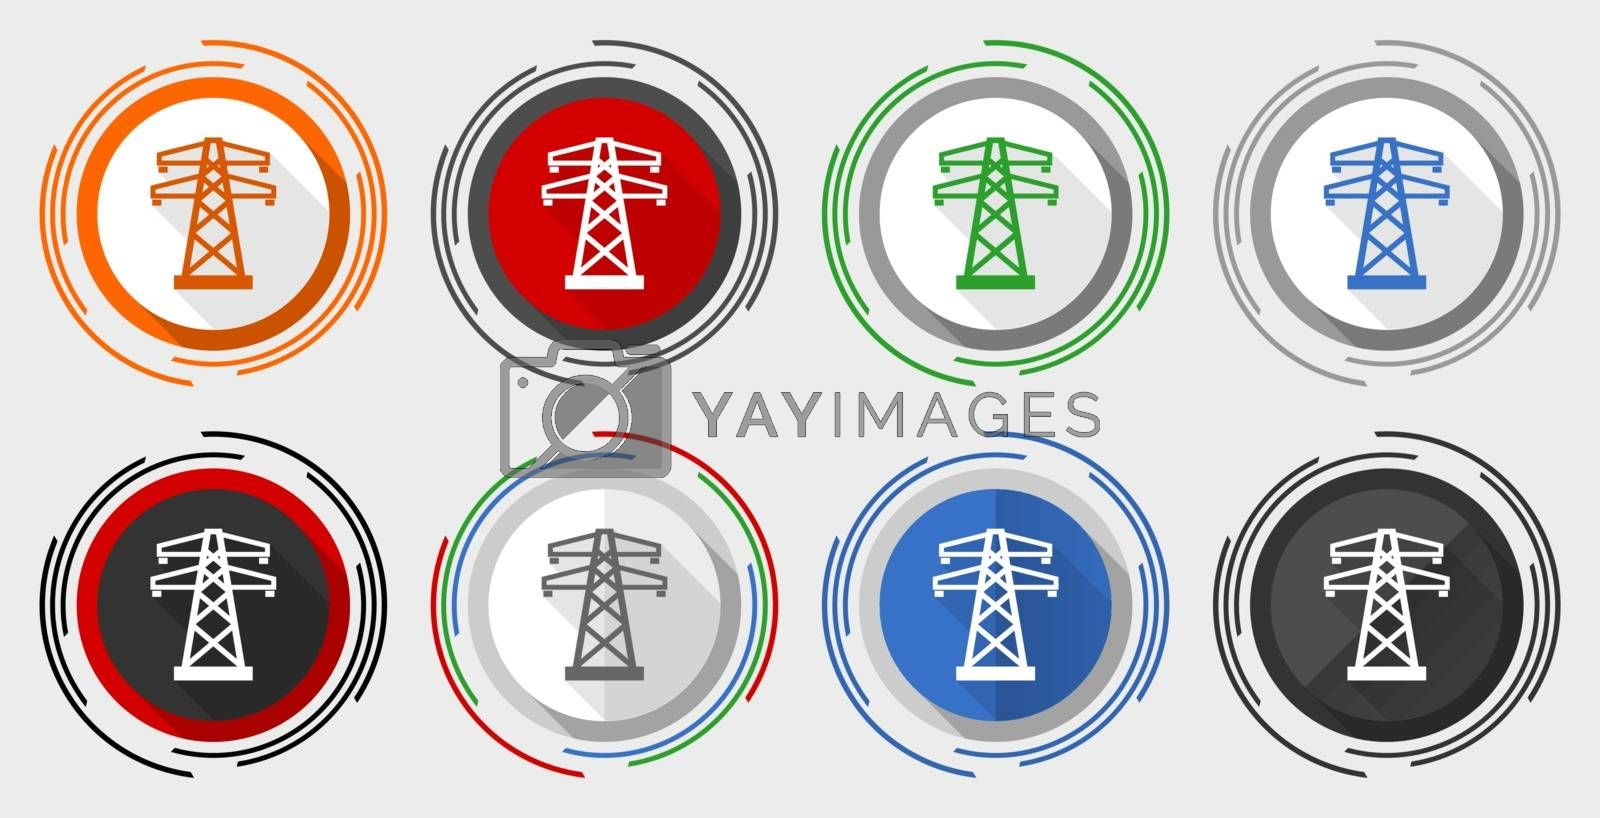 Royalty free image of Power, energy tower modern design flat graphic in 8 options for web design and mobile applications by alexwhite